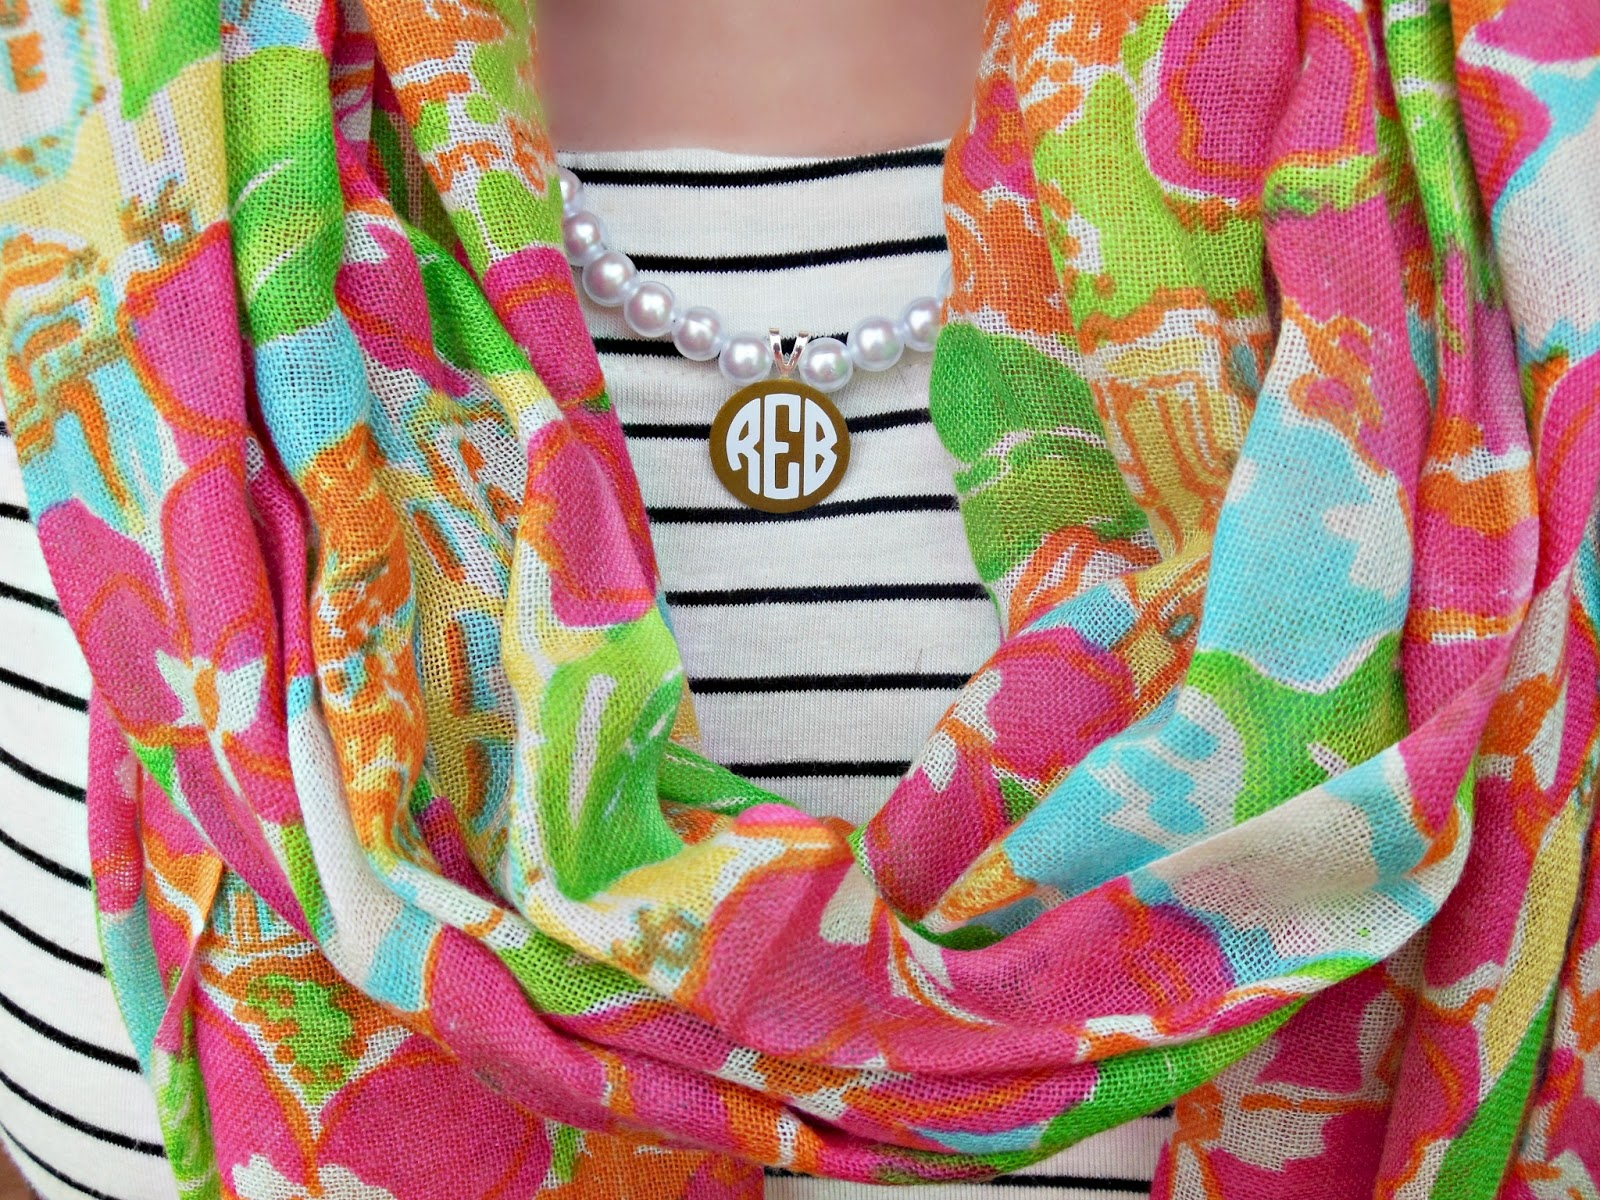 What I Am Wearing: Striped Dresstarget, Peal Monogrammed Necklace An Etsy  Shop, Knoxville Tn Scarf Lilly Pulitzer, Earrings Tory Burch, White  Scallop